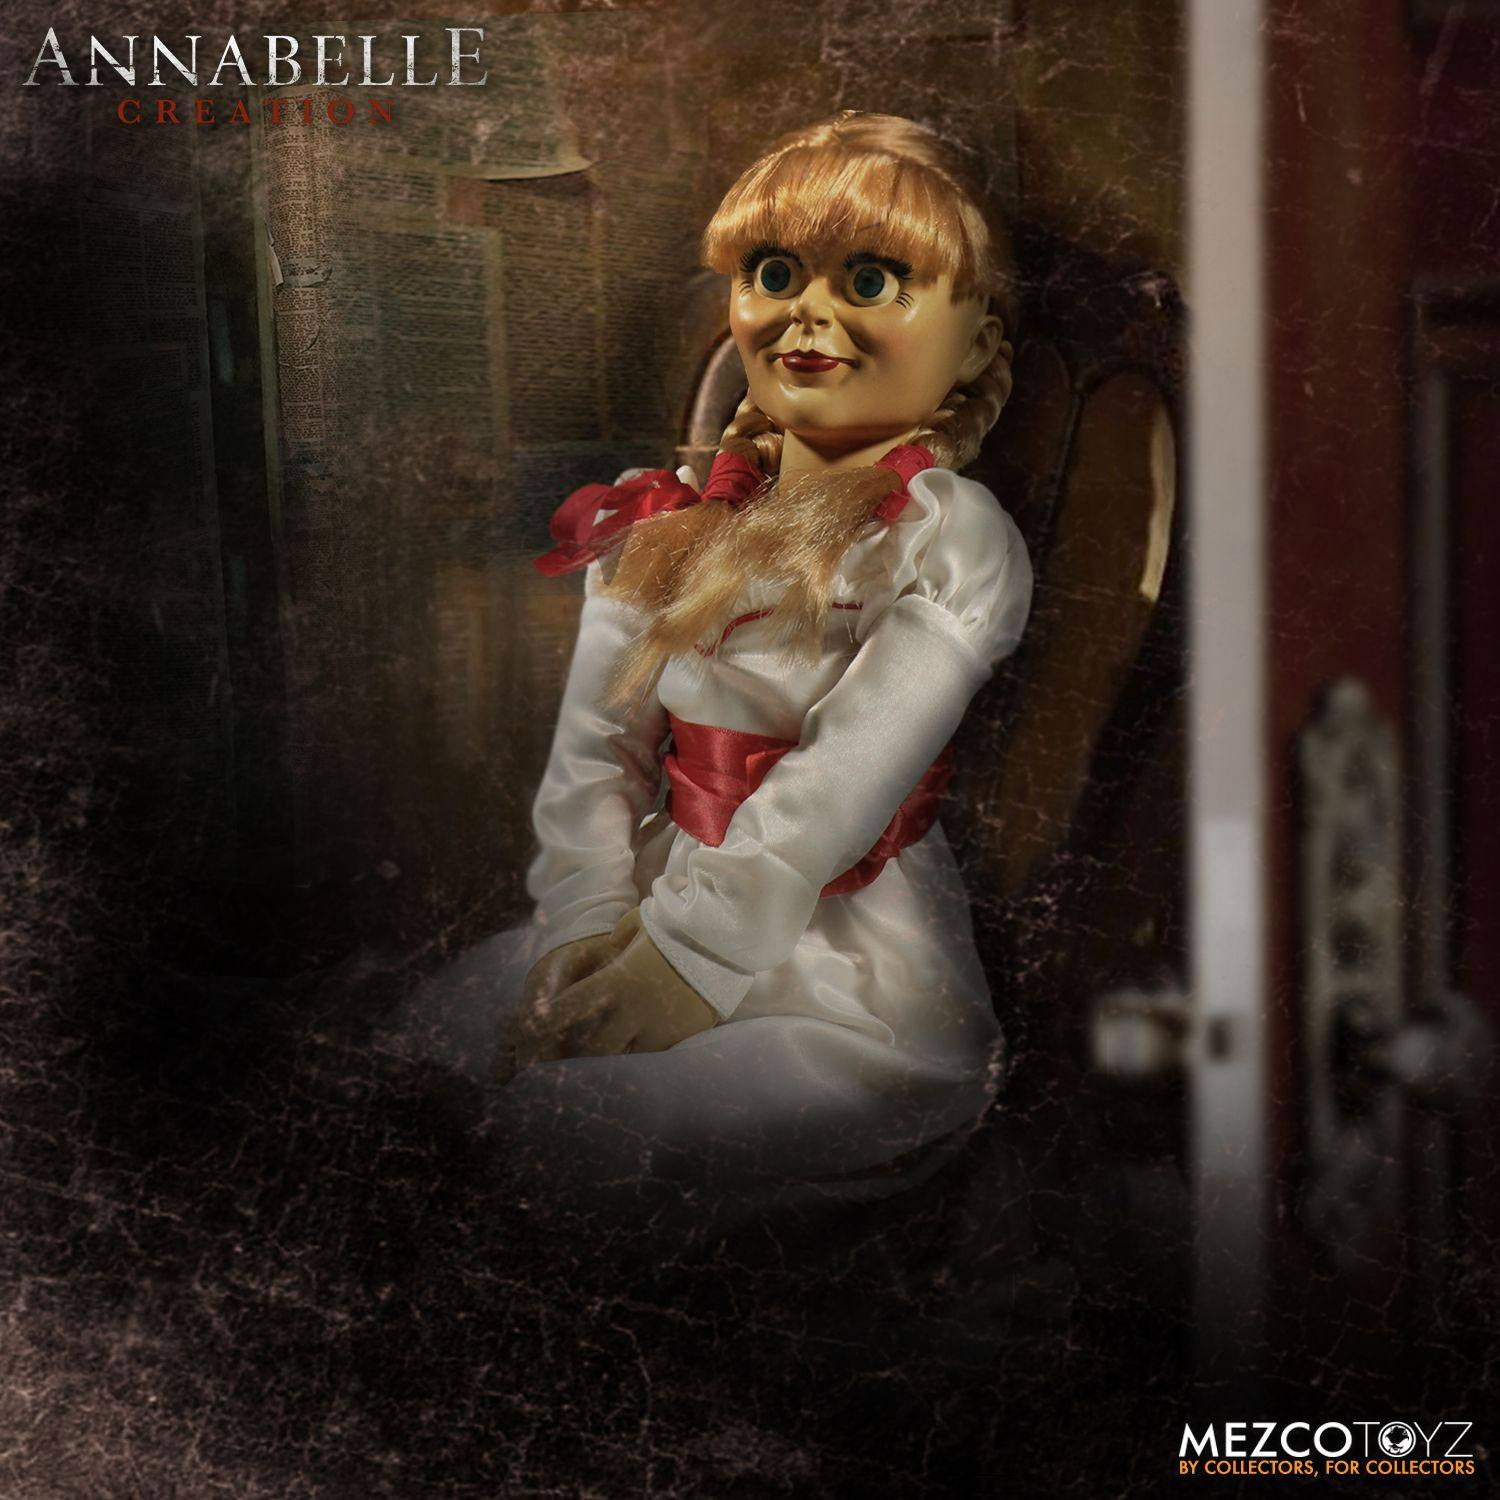 Annabelle Creation Scaled Prop Replica Annabelle Doll 46 cm - Animegami  Store